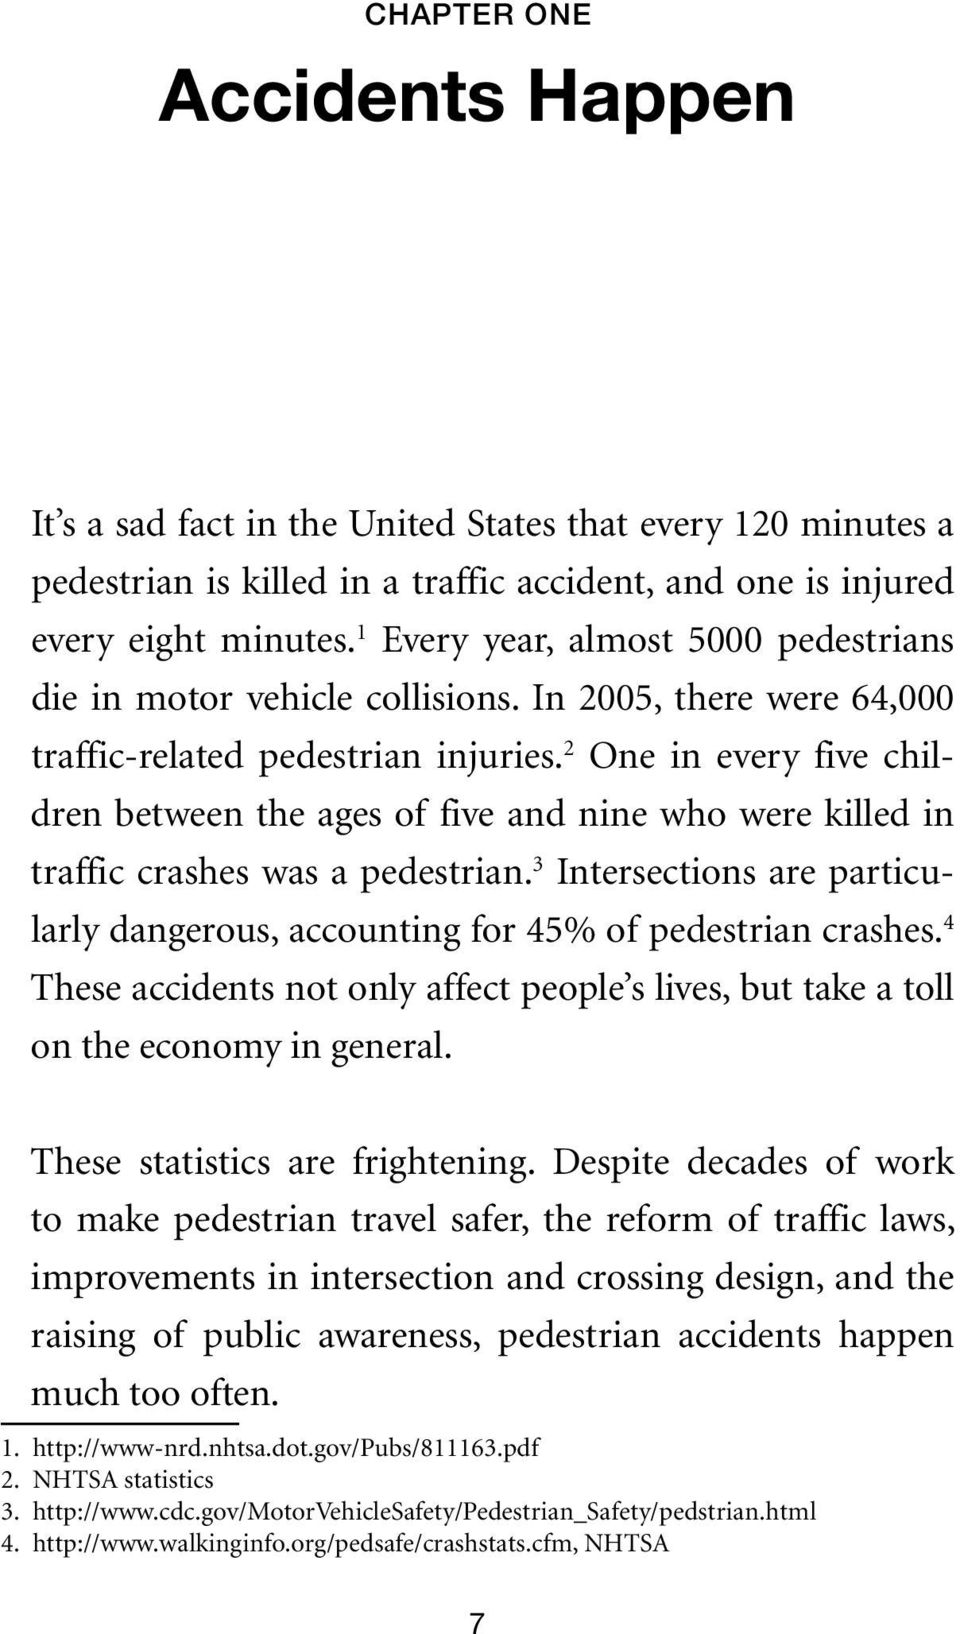 2 One in every five children between the ages of five and nine who were killed in traffic crashes was a pedestrian.